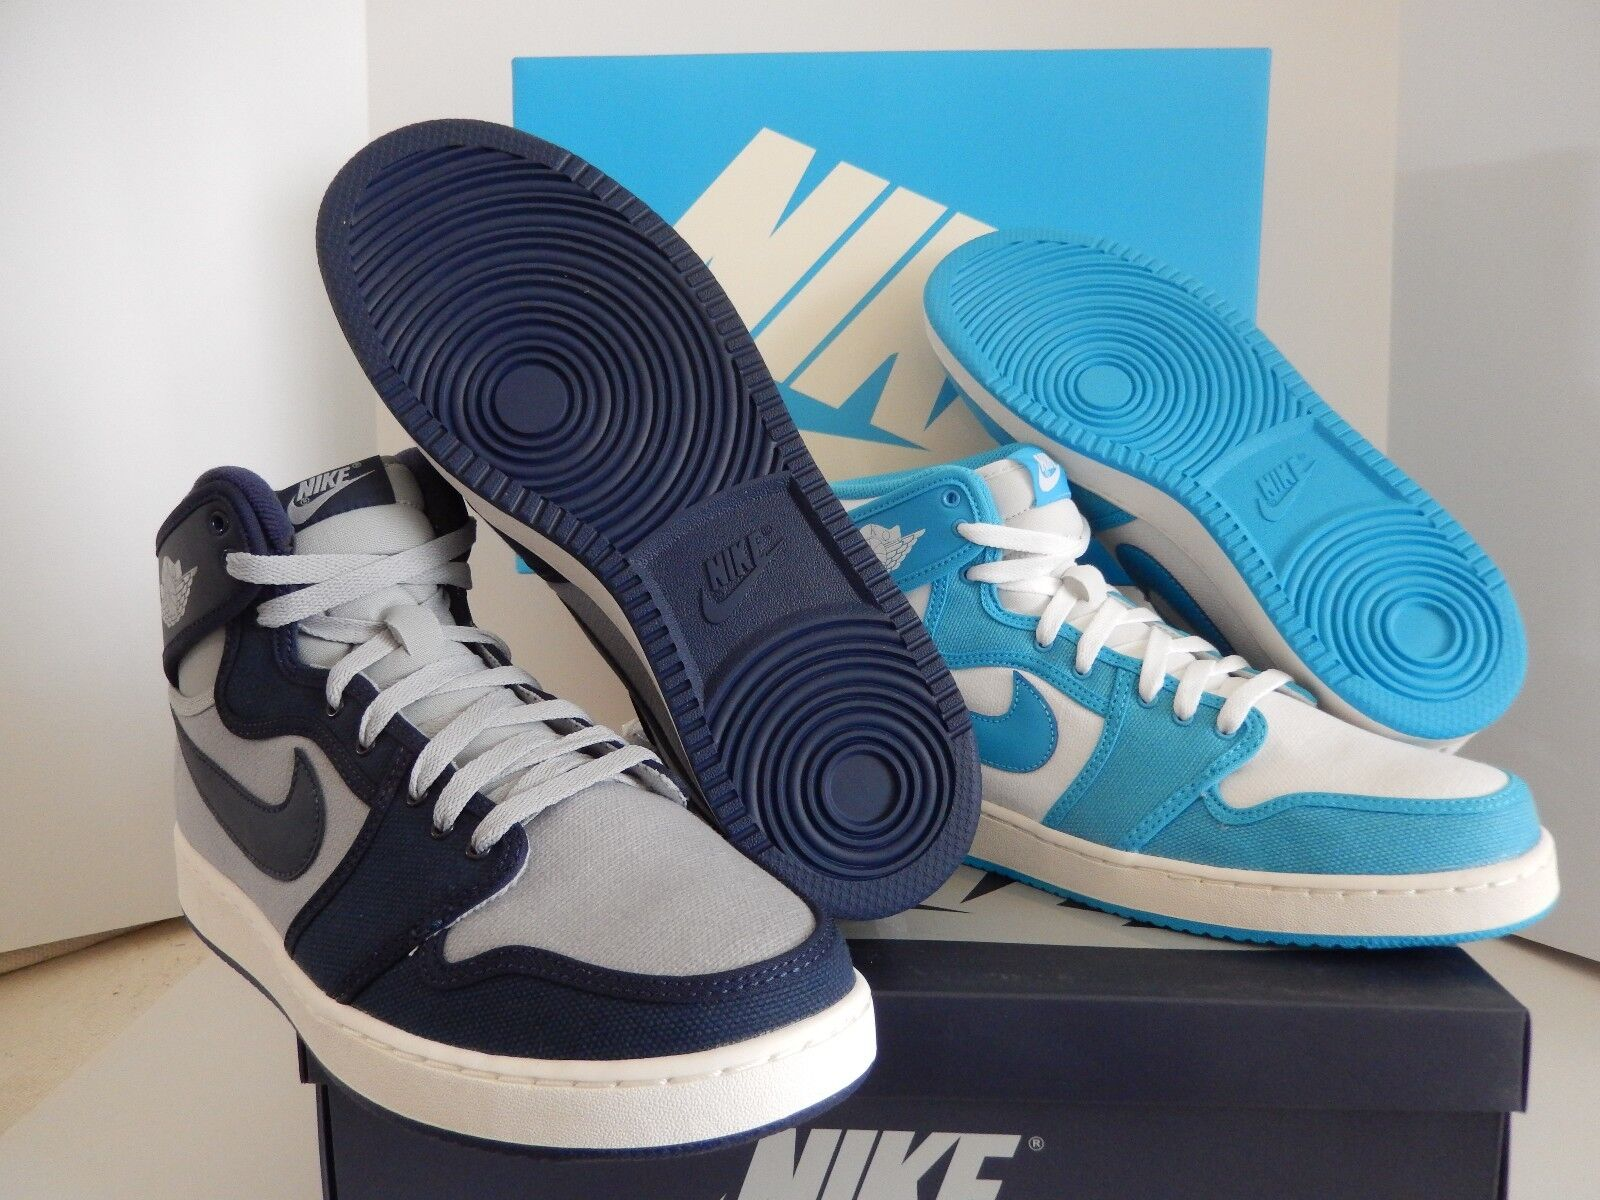 NIKE AIR JORDAN AJ1 KO HIGH OG RIVALRY PACK UNC/GEORGETOWN SZ 7 [655328-900]